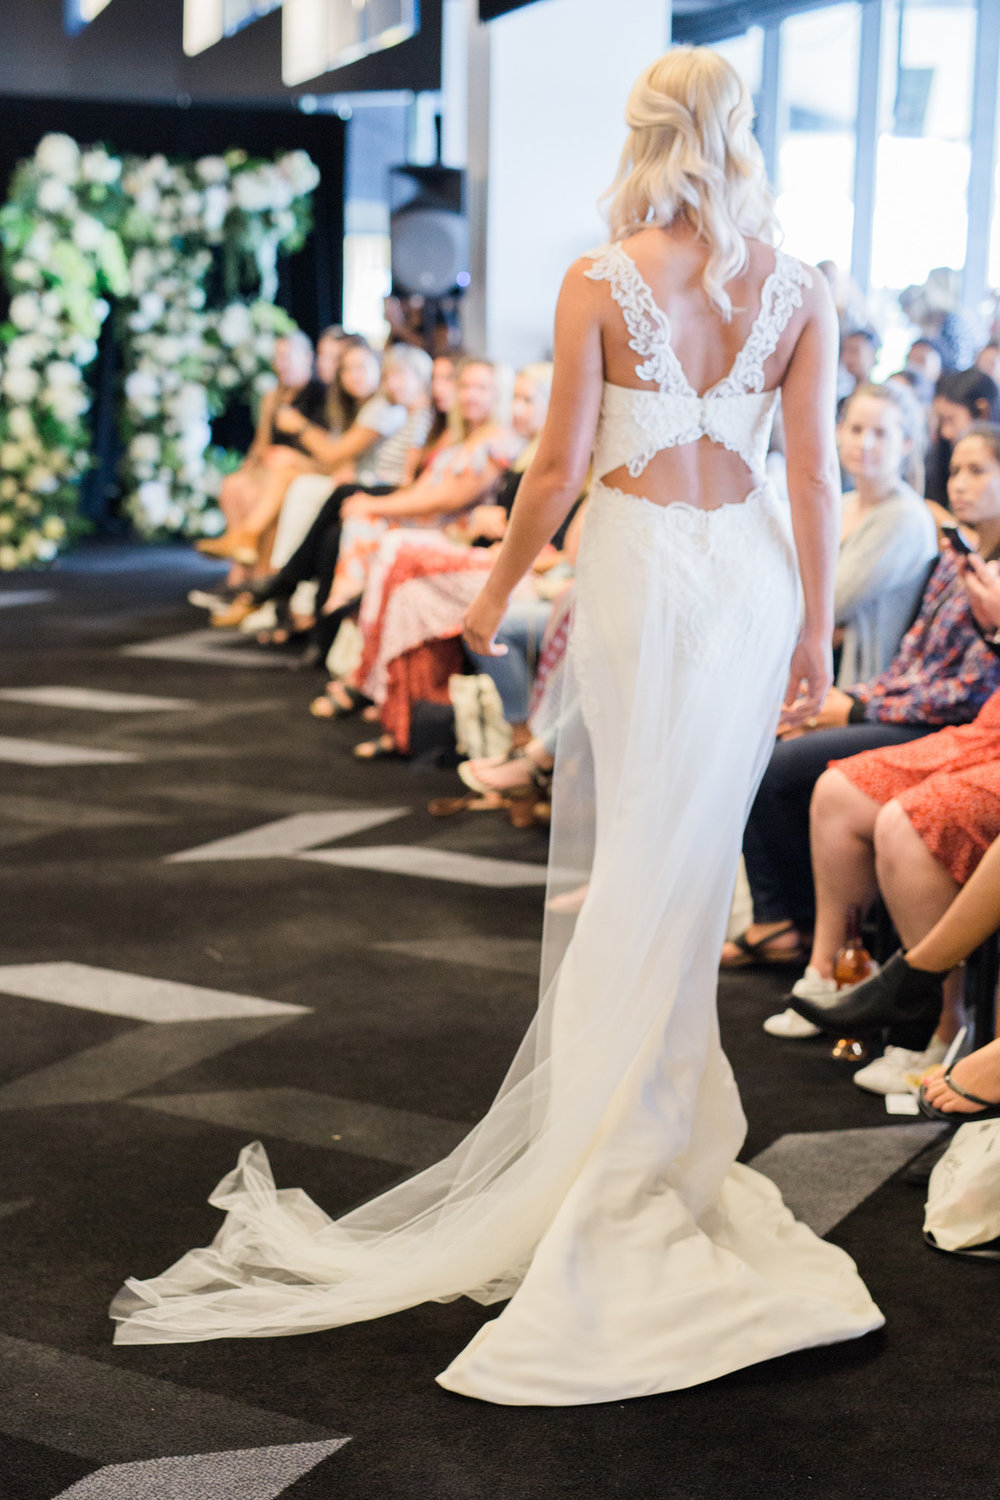 Love-Wedding-Festival-Sydney-Wedding-Gown-Angela-Osagie-37.jpg